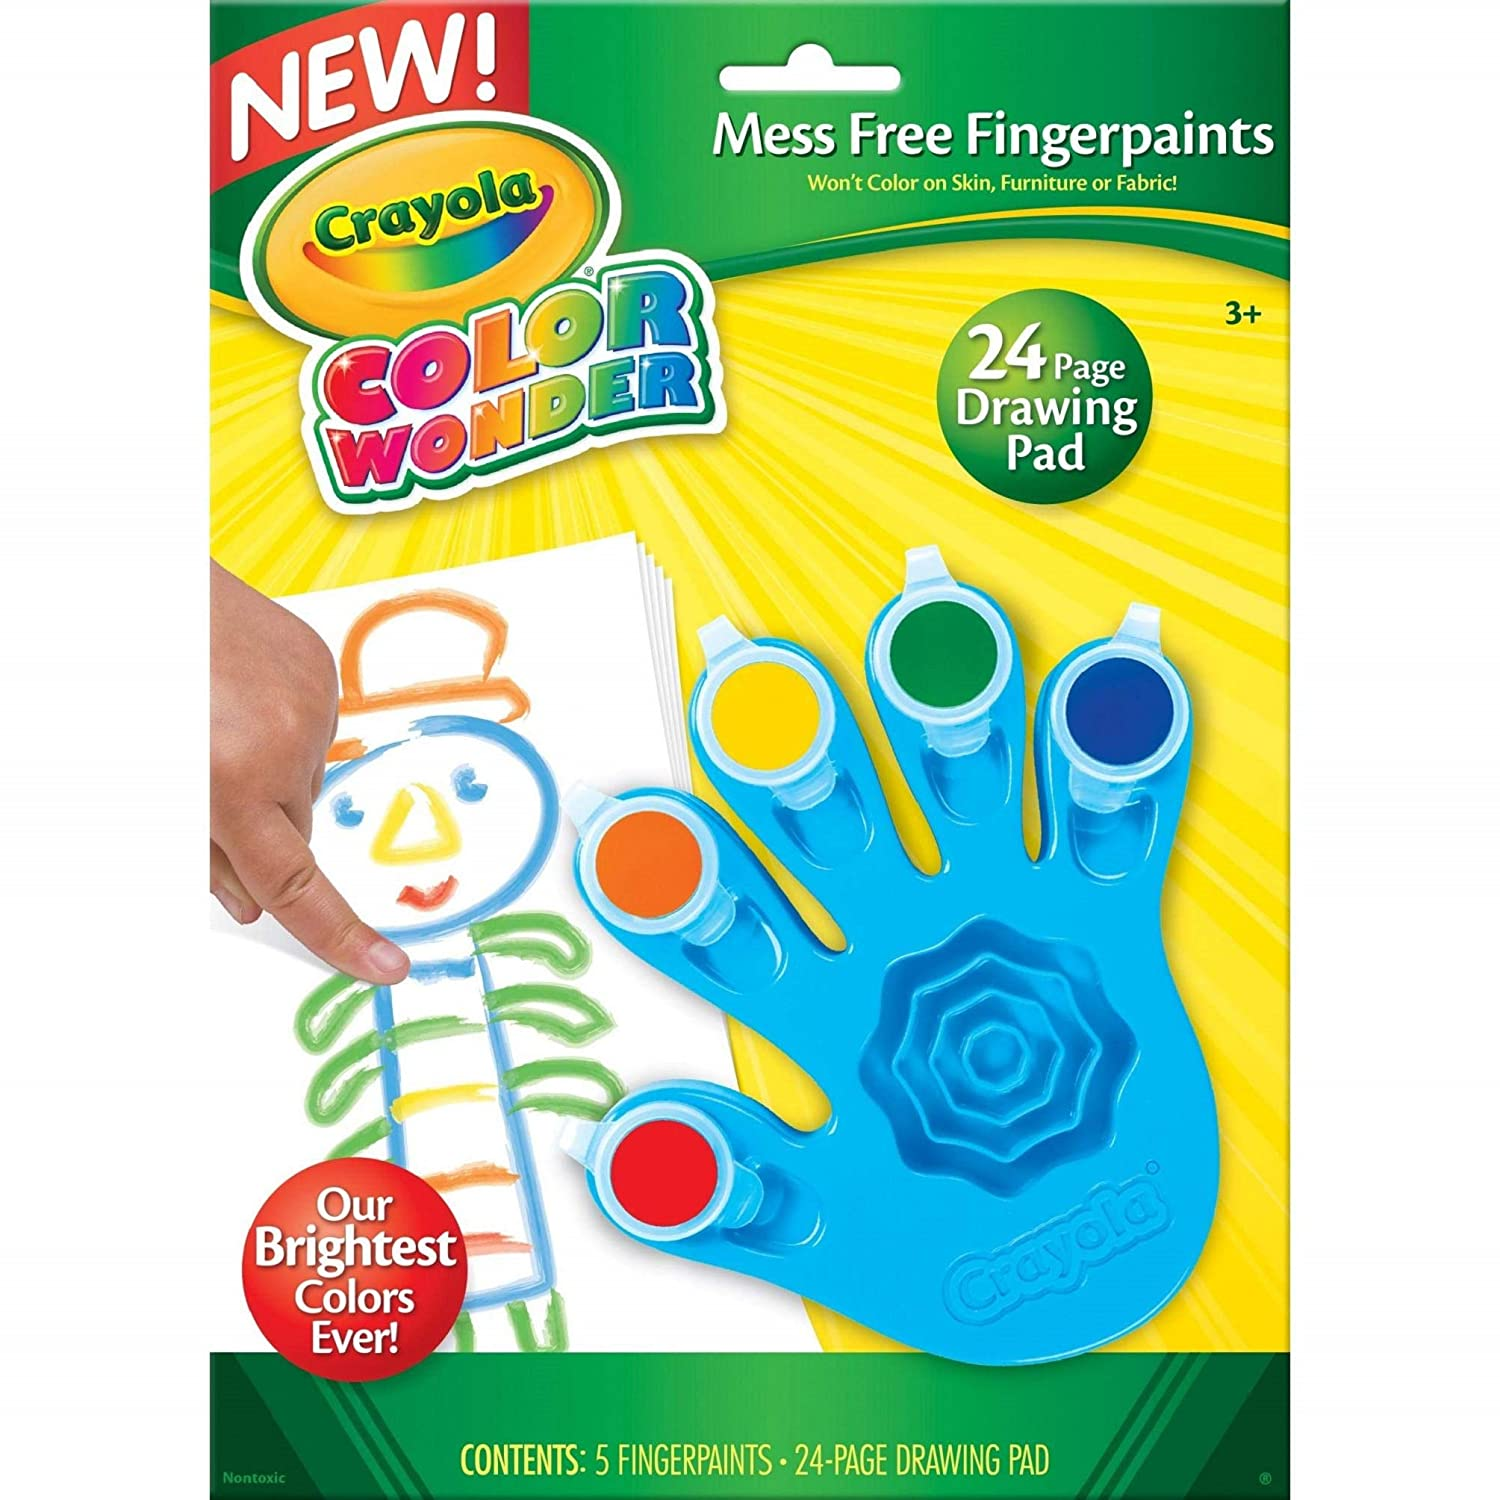 B001KW05ZW Crayola, Color Wonder Mess Free Fingerpaints and Paper, Art Tools, Great for Travel 81ZRycCsO8L